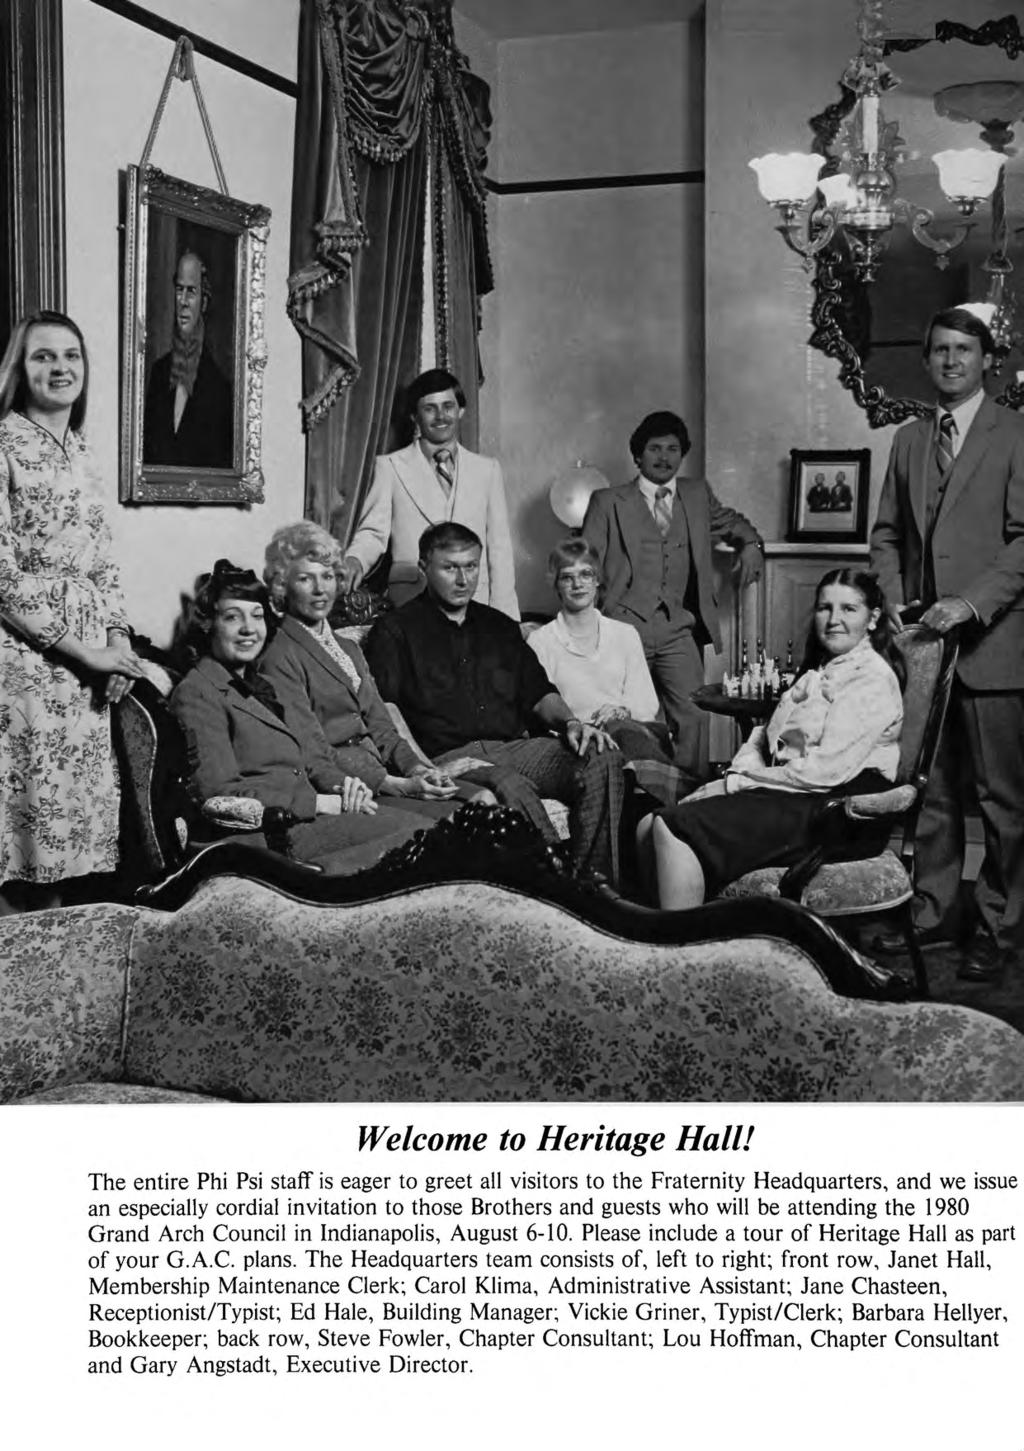 Welcome to Heritage Hall!